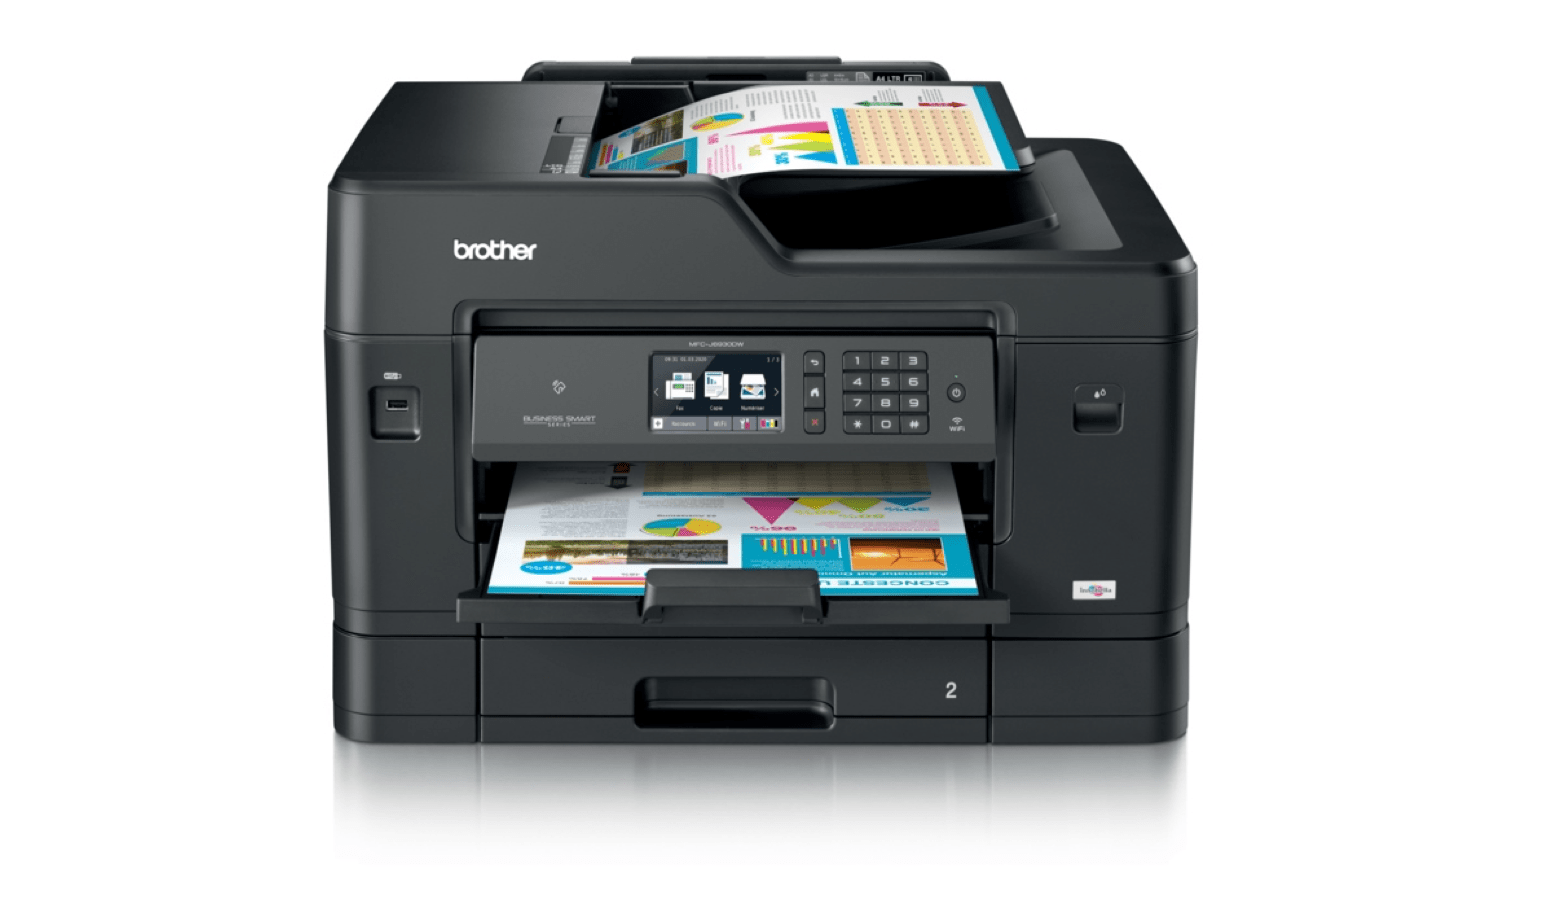 J6000 part of the Business Smart printer range